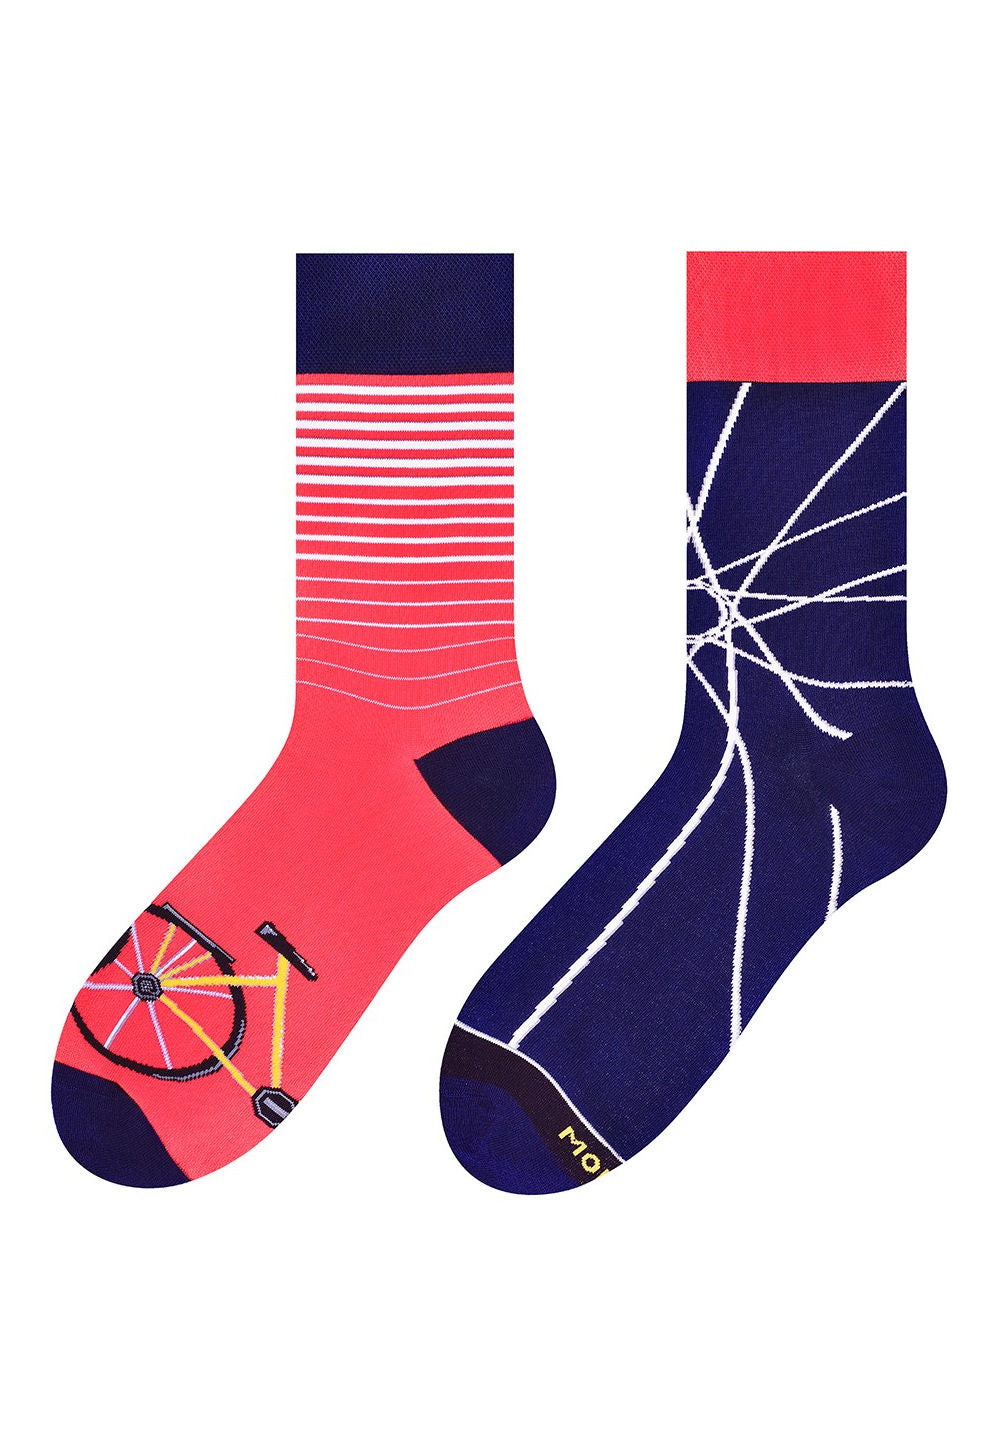 Bicycle Odd Patterned Socks in Navy & Red by More